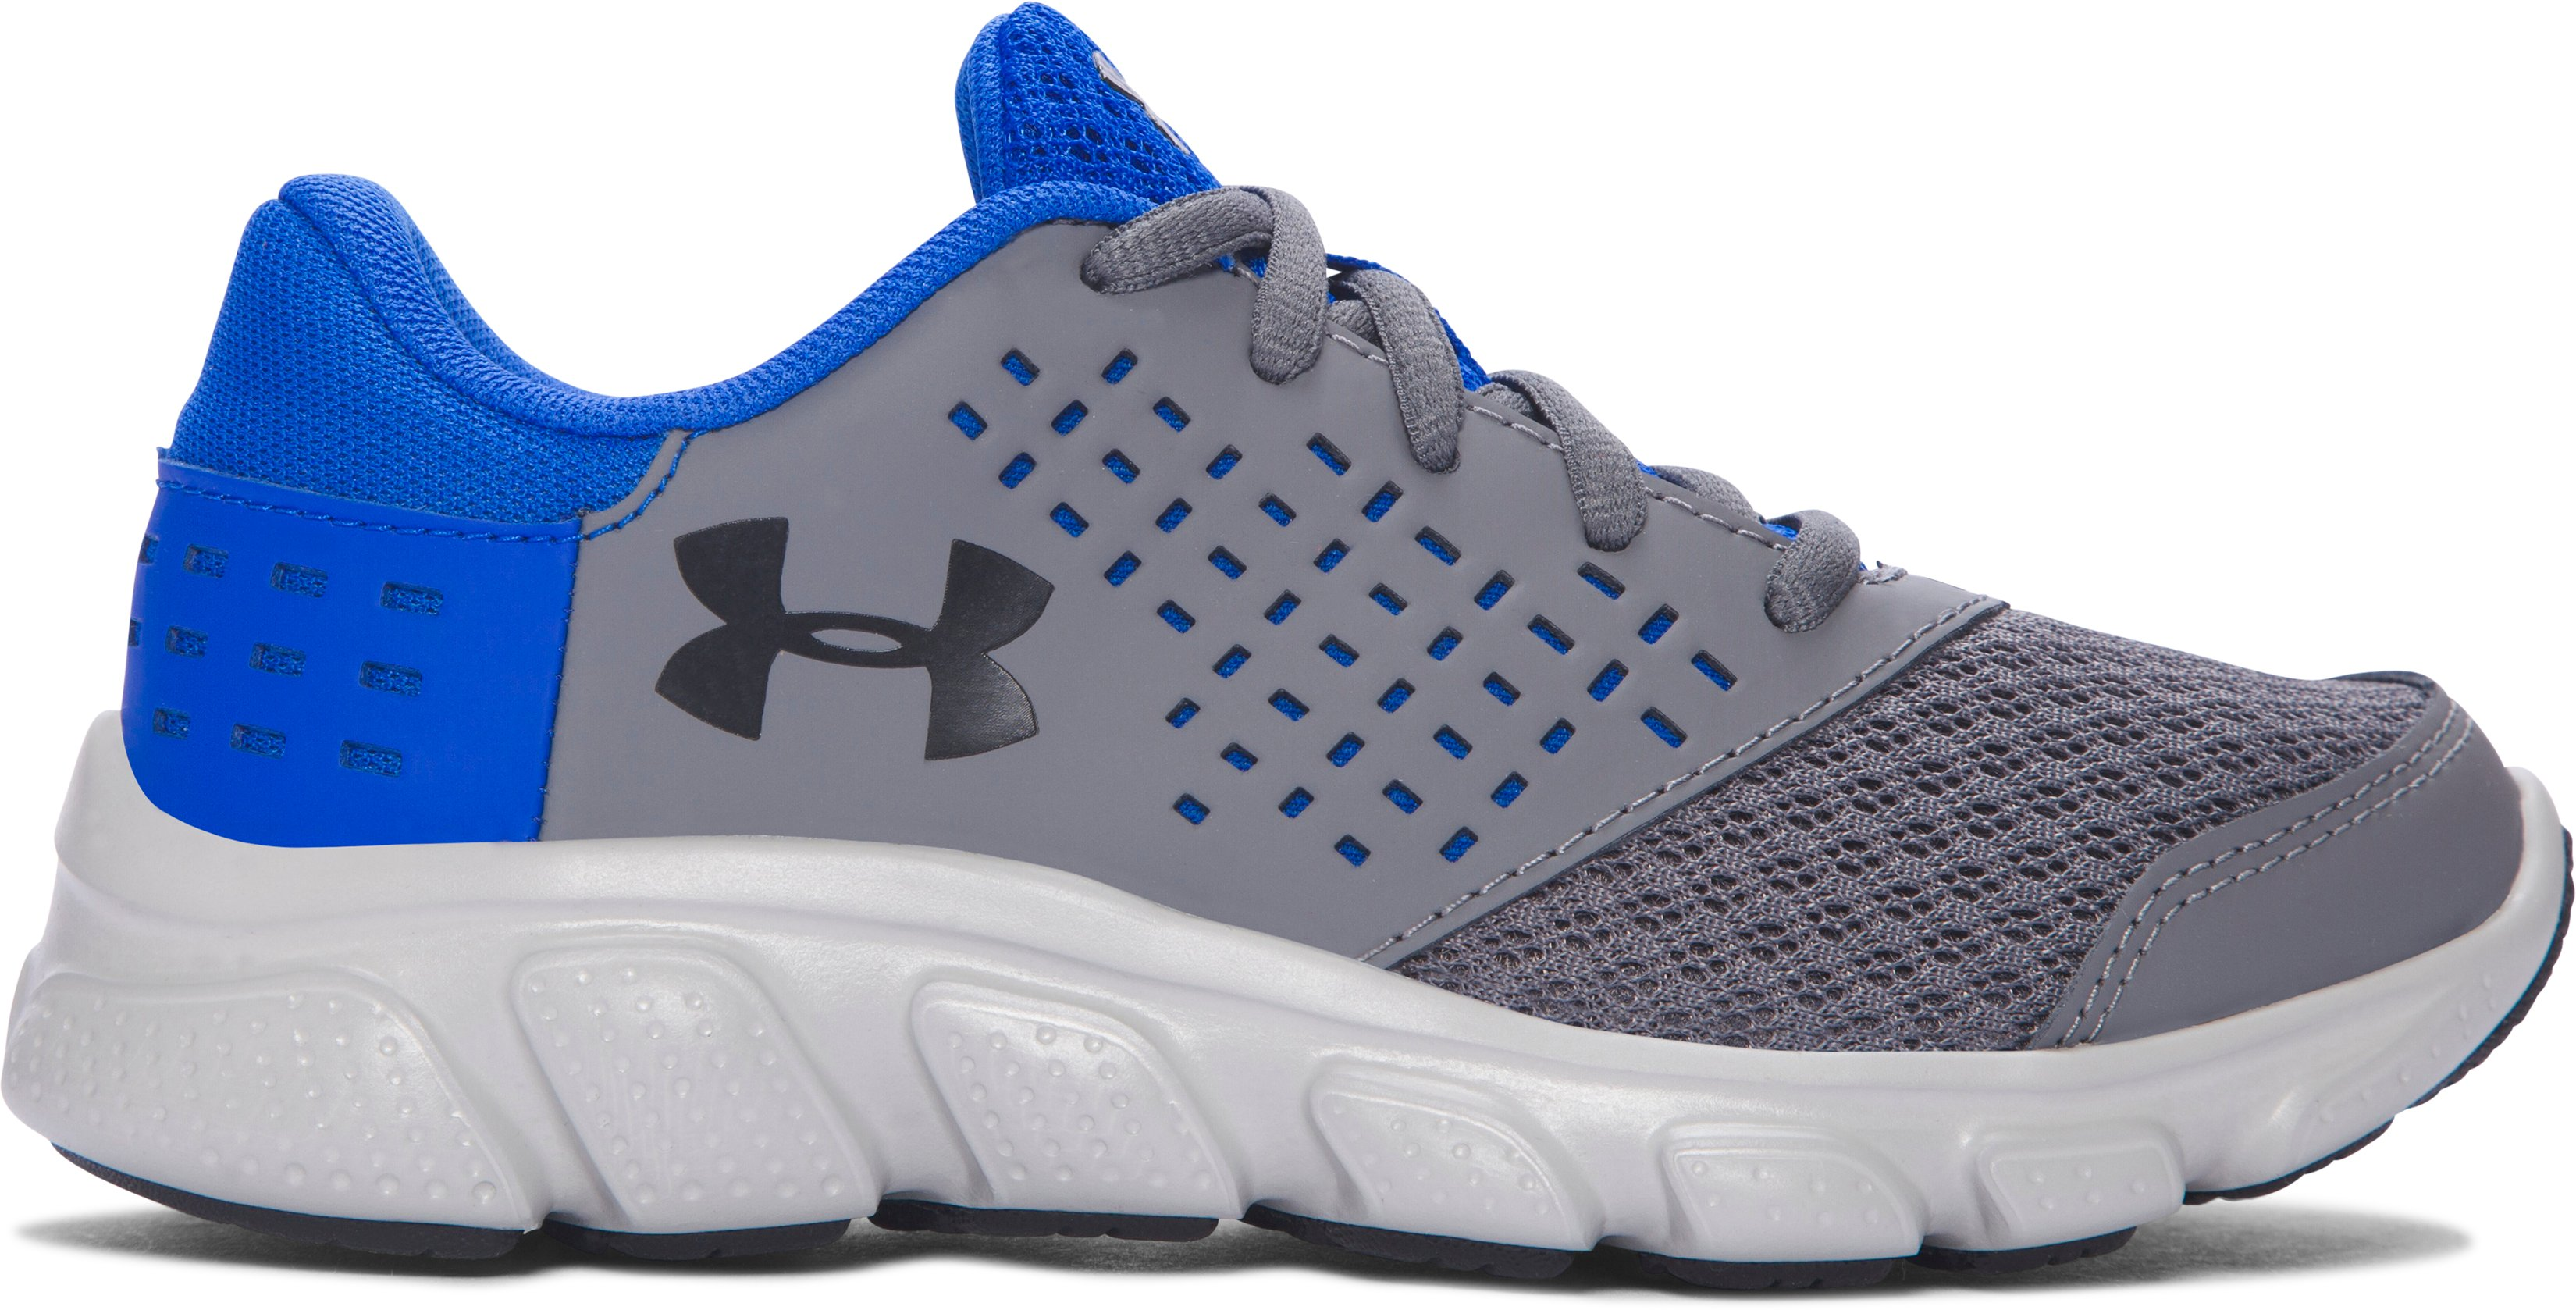 Boys' Pre-School UA Rave Running Shoes, Graphite